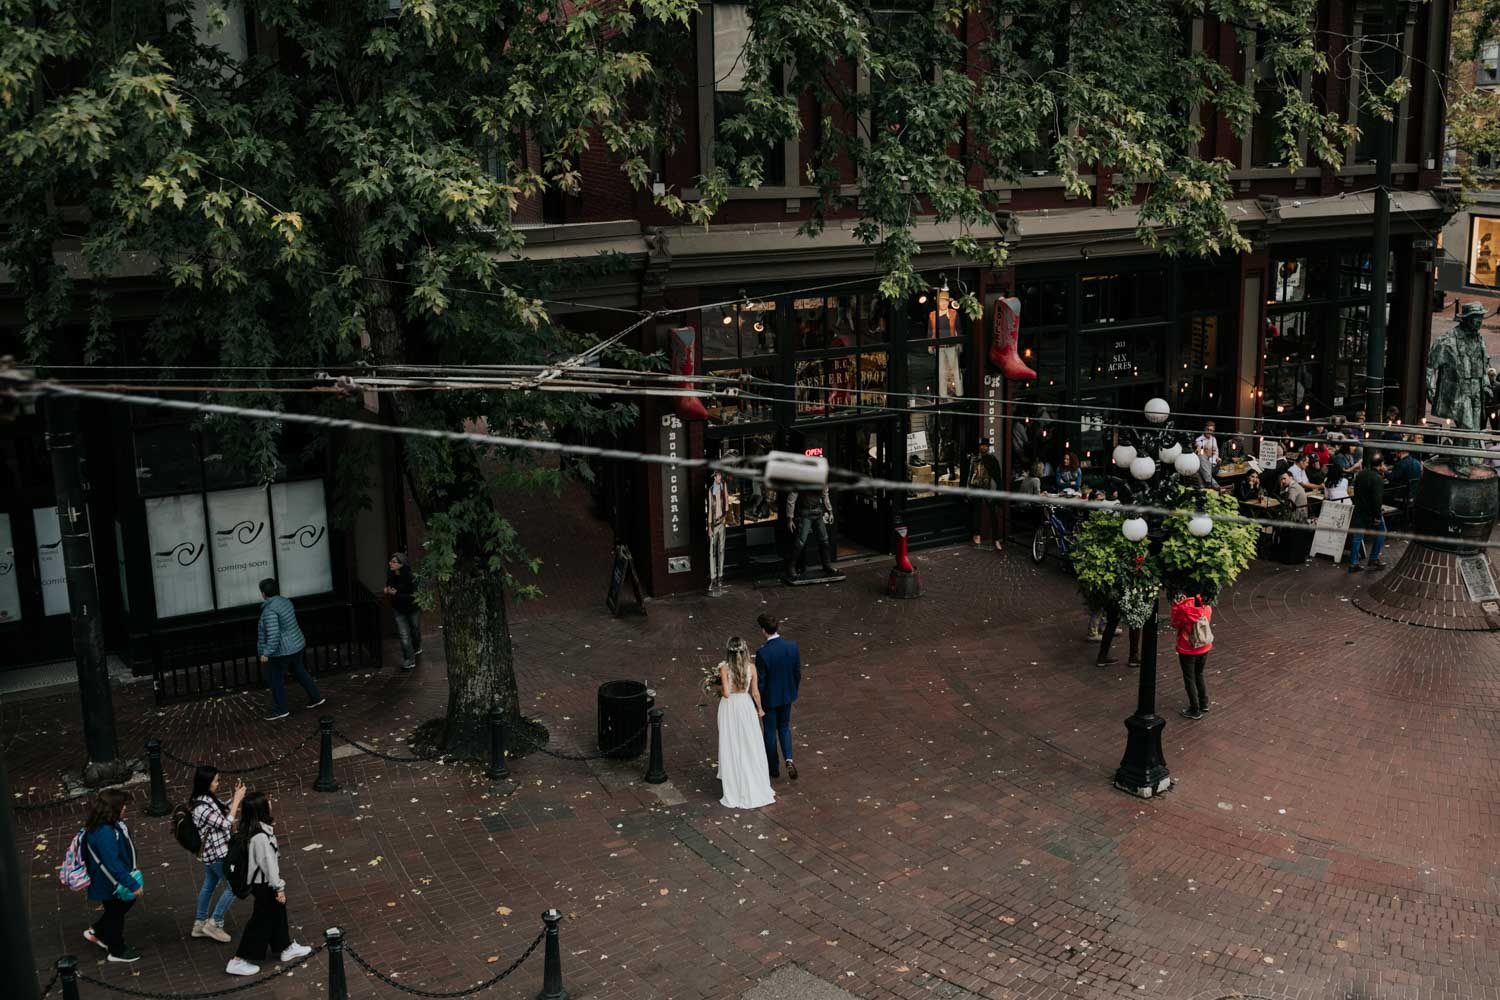 Wedding couple photo session on the city streets of Gastown in Vancouver